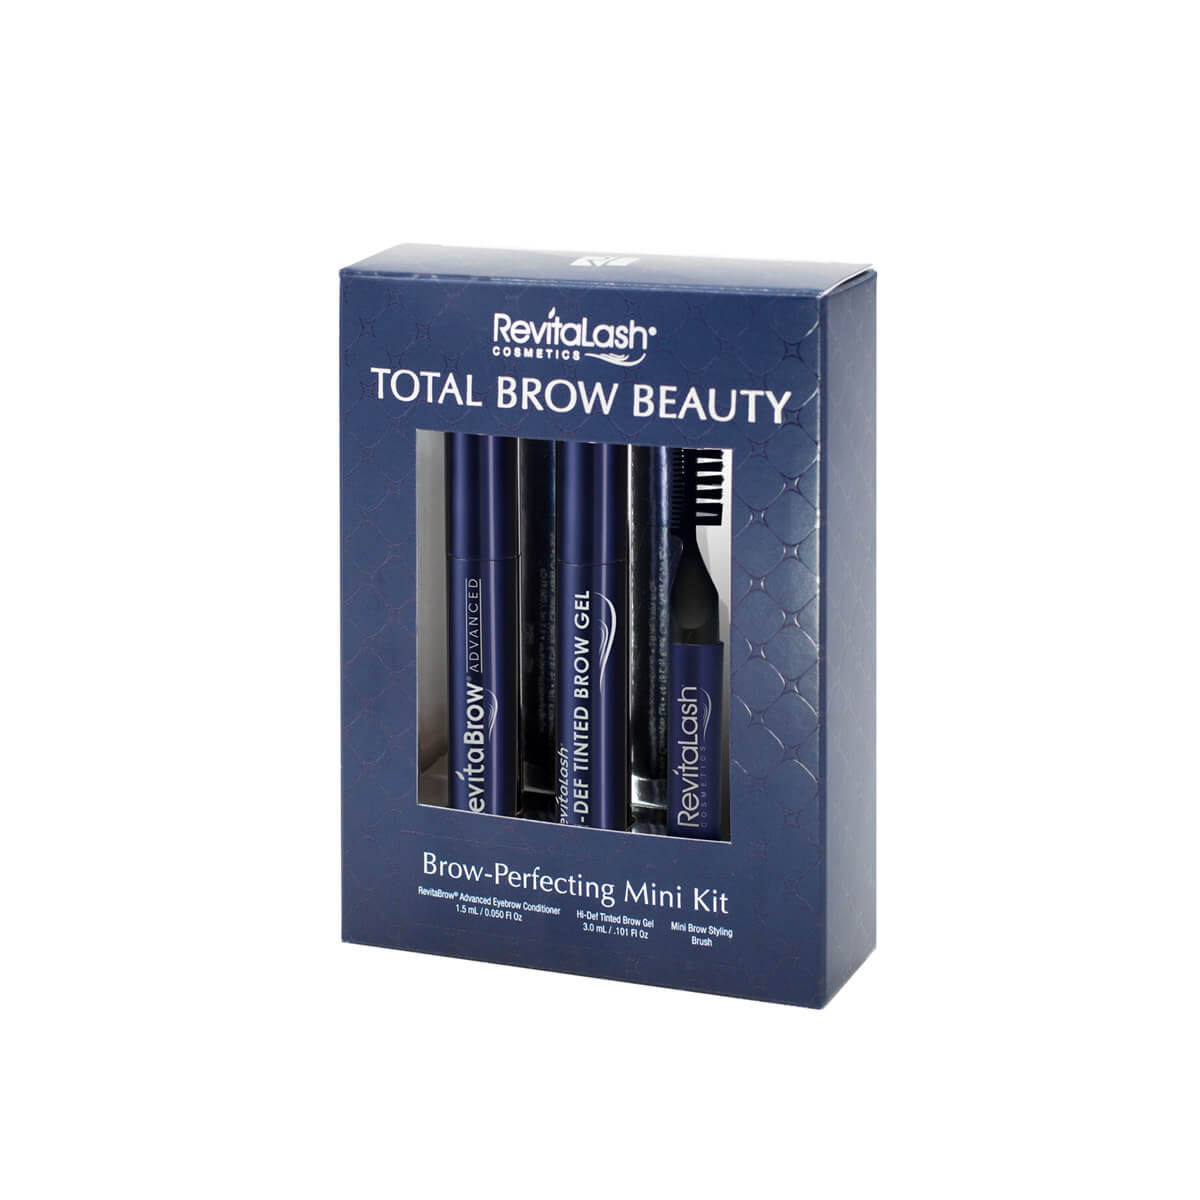 Revitalash total brow beauty brow-perfecting mini kit fra N/A fra spashop.dk